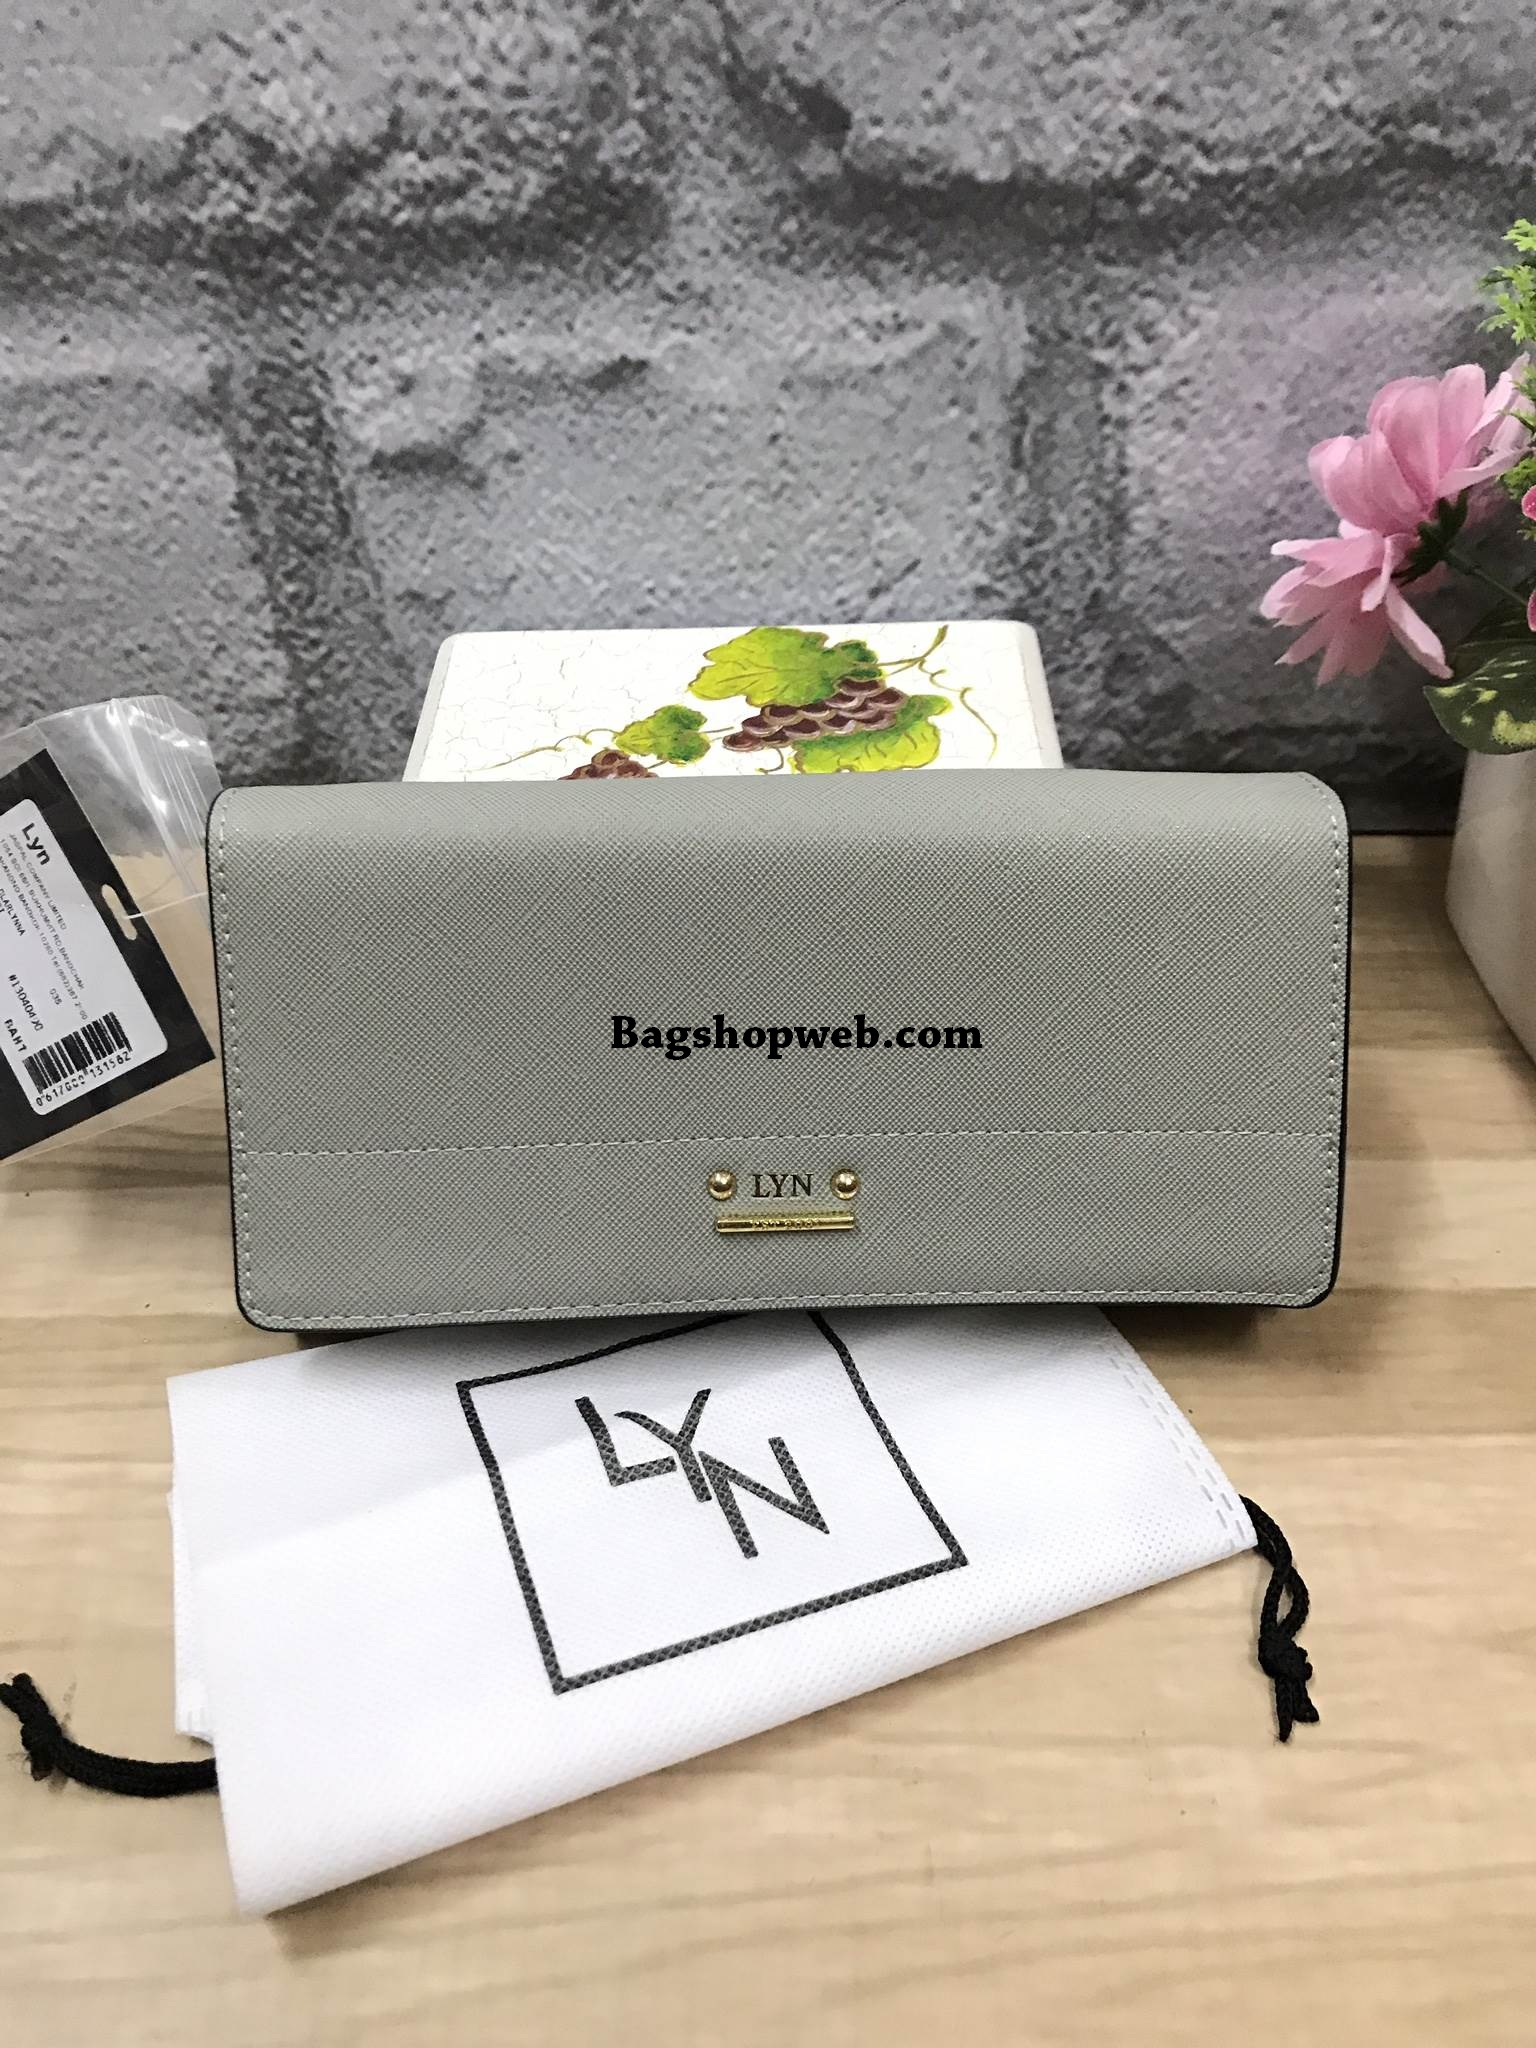 LYN PANDORA LONG WALLET 2017